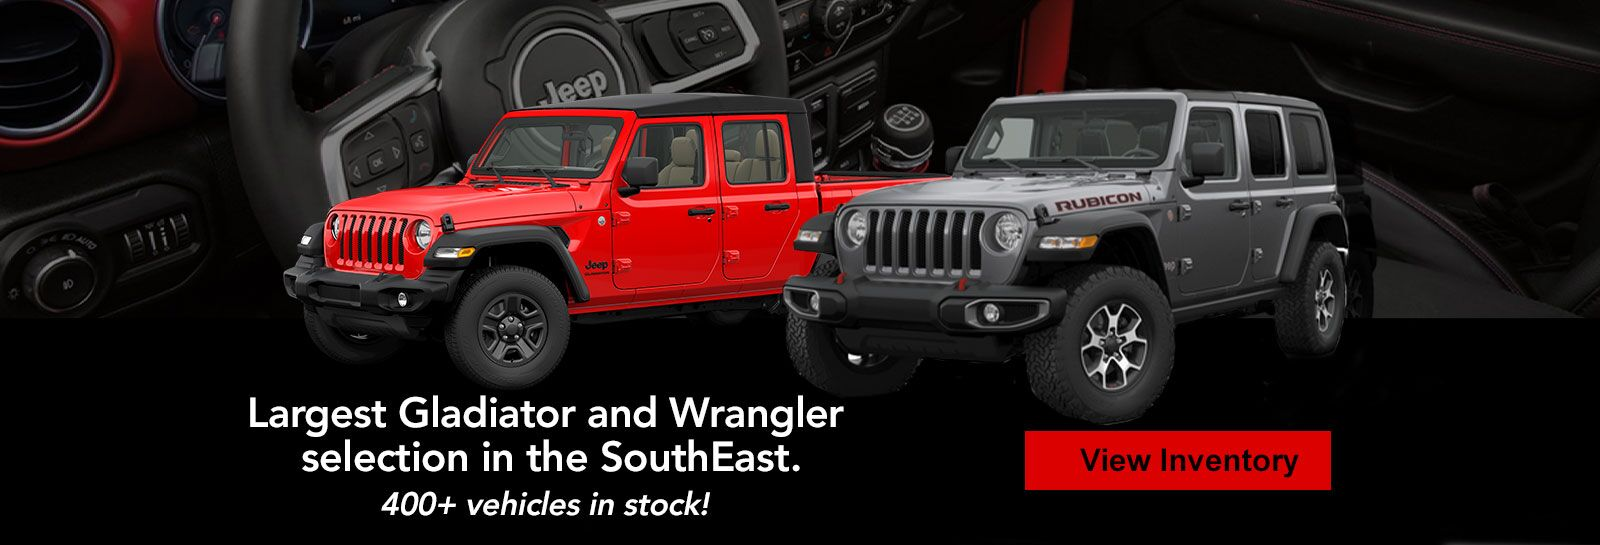 Largest Gladiator and Wrangler Selection in the SouthEast